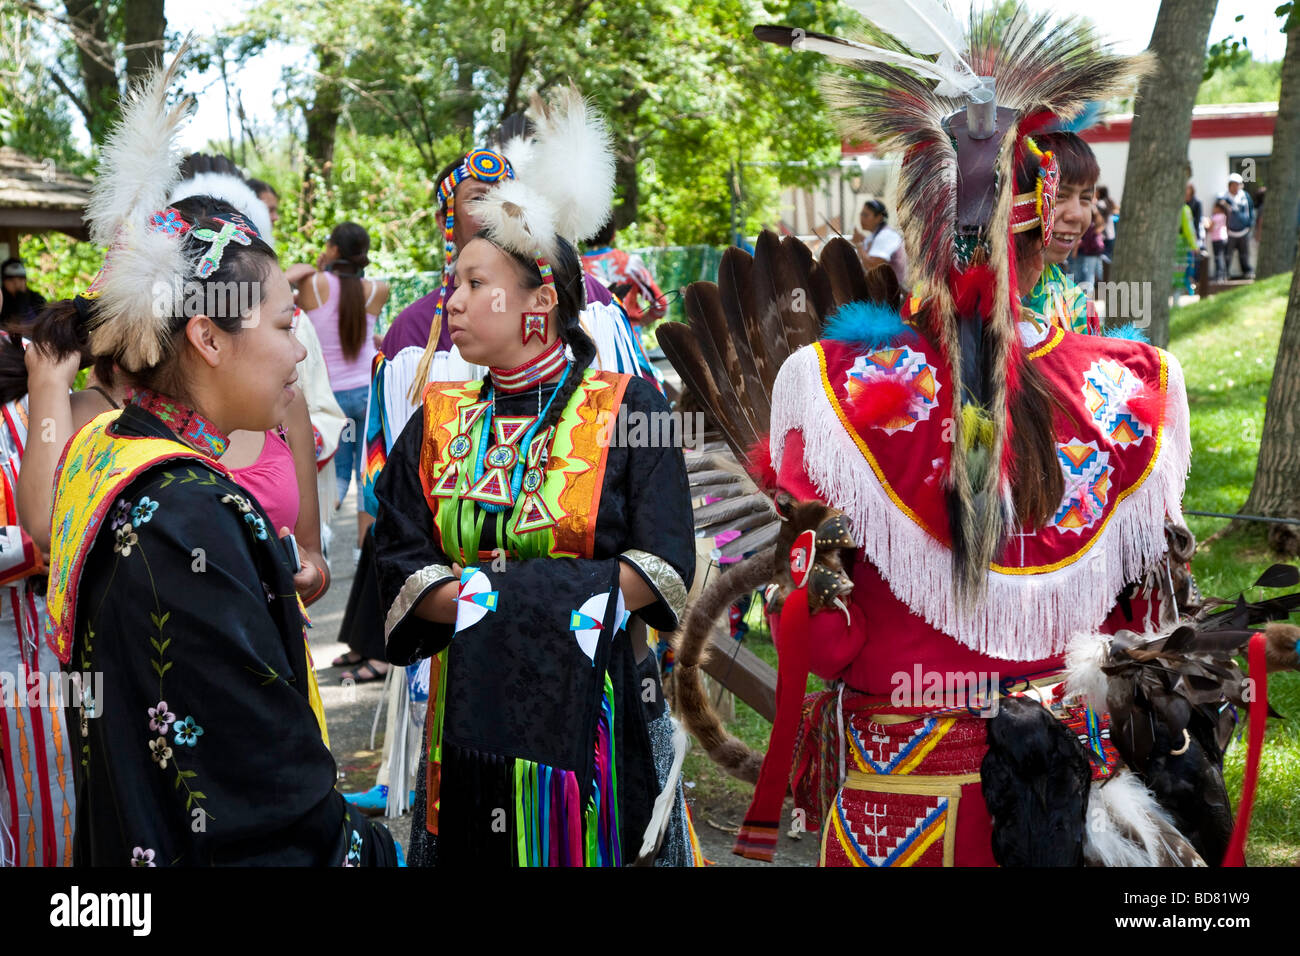 North American Plaims Native Indian in traditional dress at Pow Wow in the Indian Village at the Calgary Stampede - Stock Image